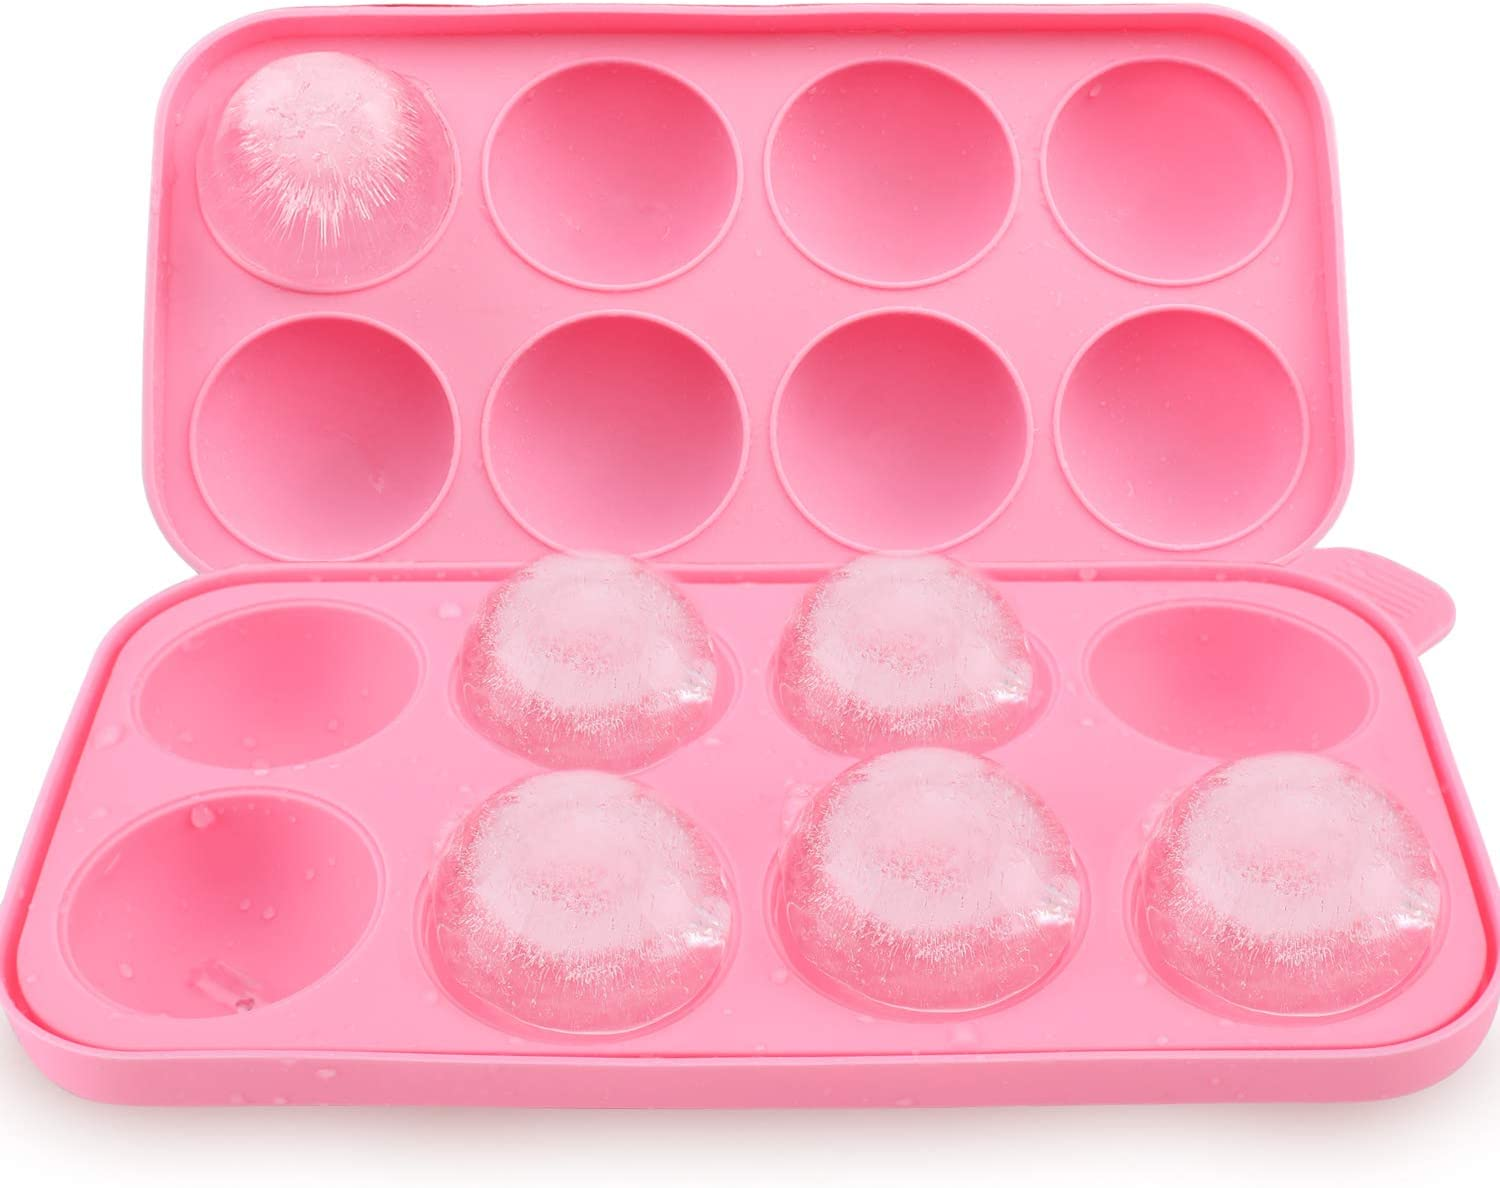 LINEBA Round Ice Balls Maker Tray 8 Sphere Molds Cube Whiskey Cocktails(PINK)